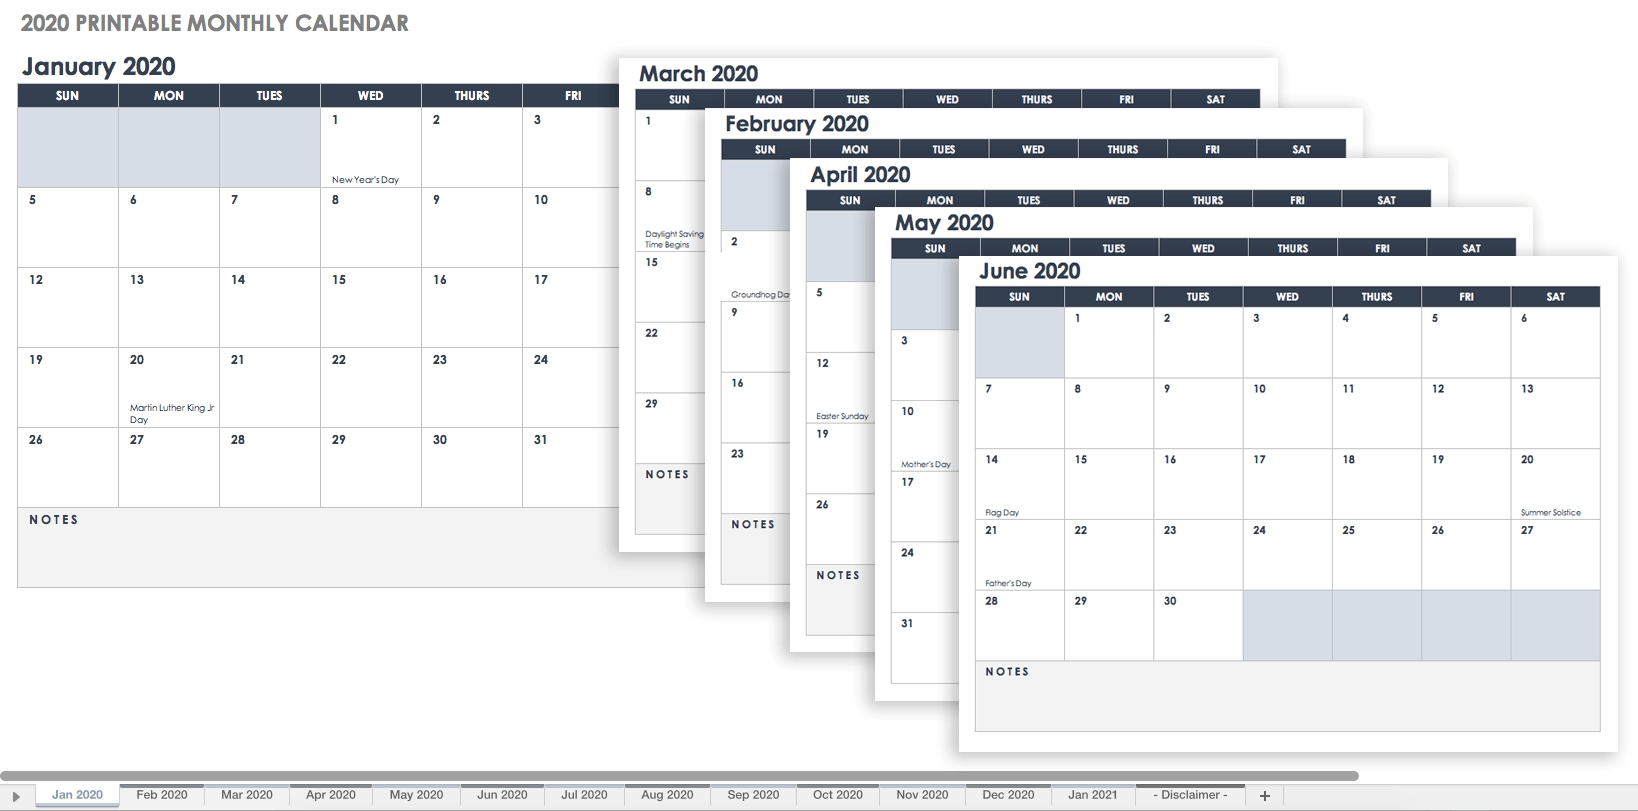 010 20Editable Monthly Lesson Plan Template Blank Calendars To Print intended for Free Lesson Plan Printable Calendar